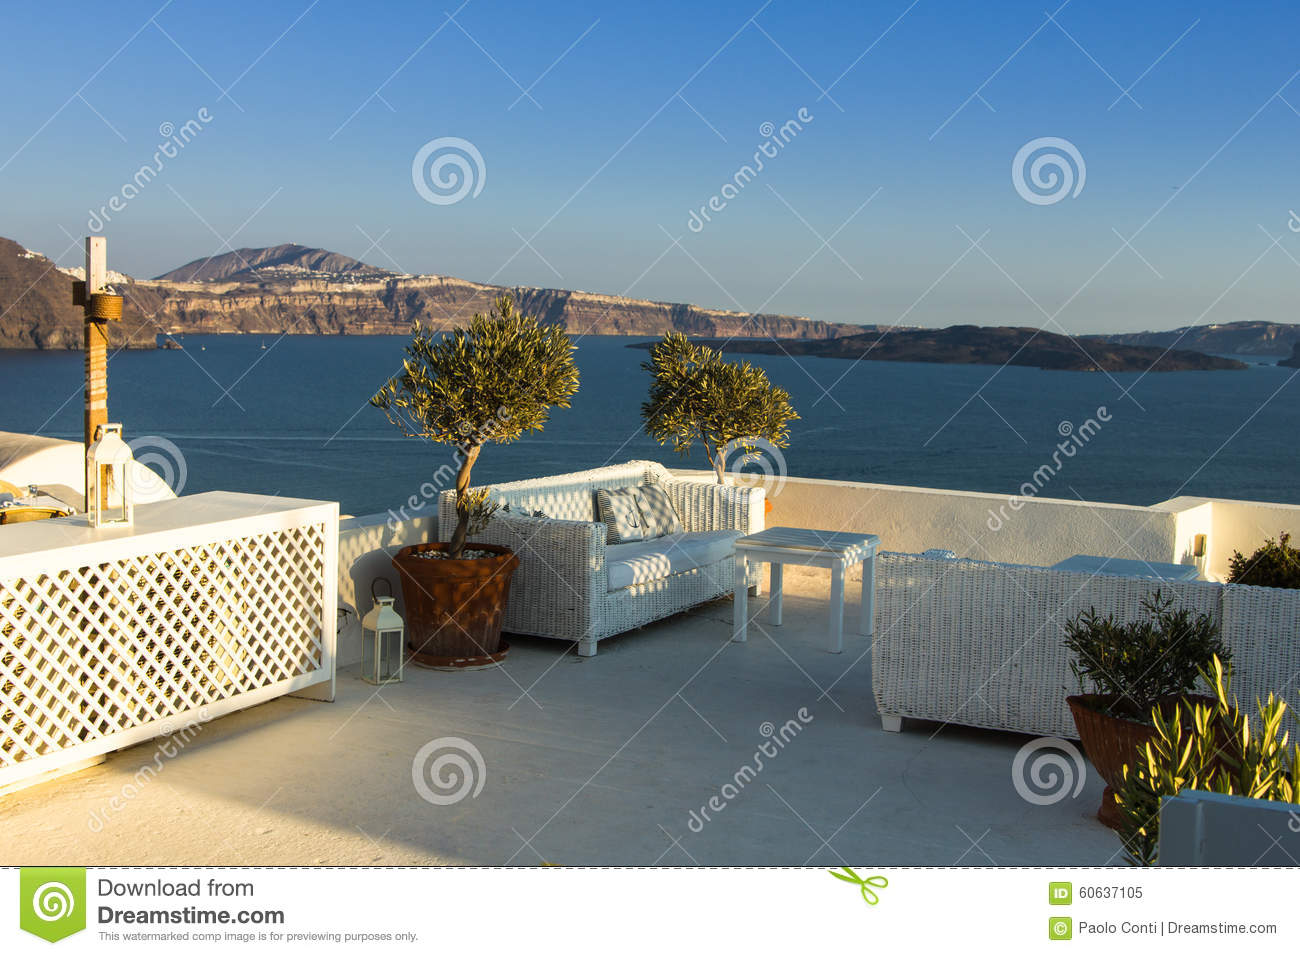 The beautiful spot santorini greece stock photo for 4758 setting sun terrace